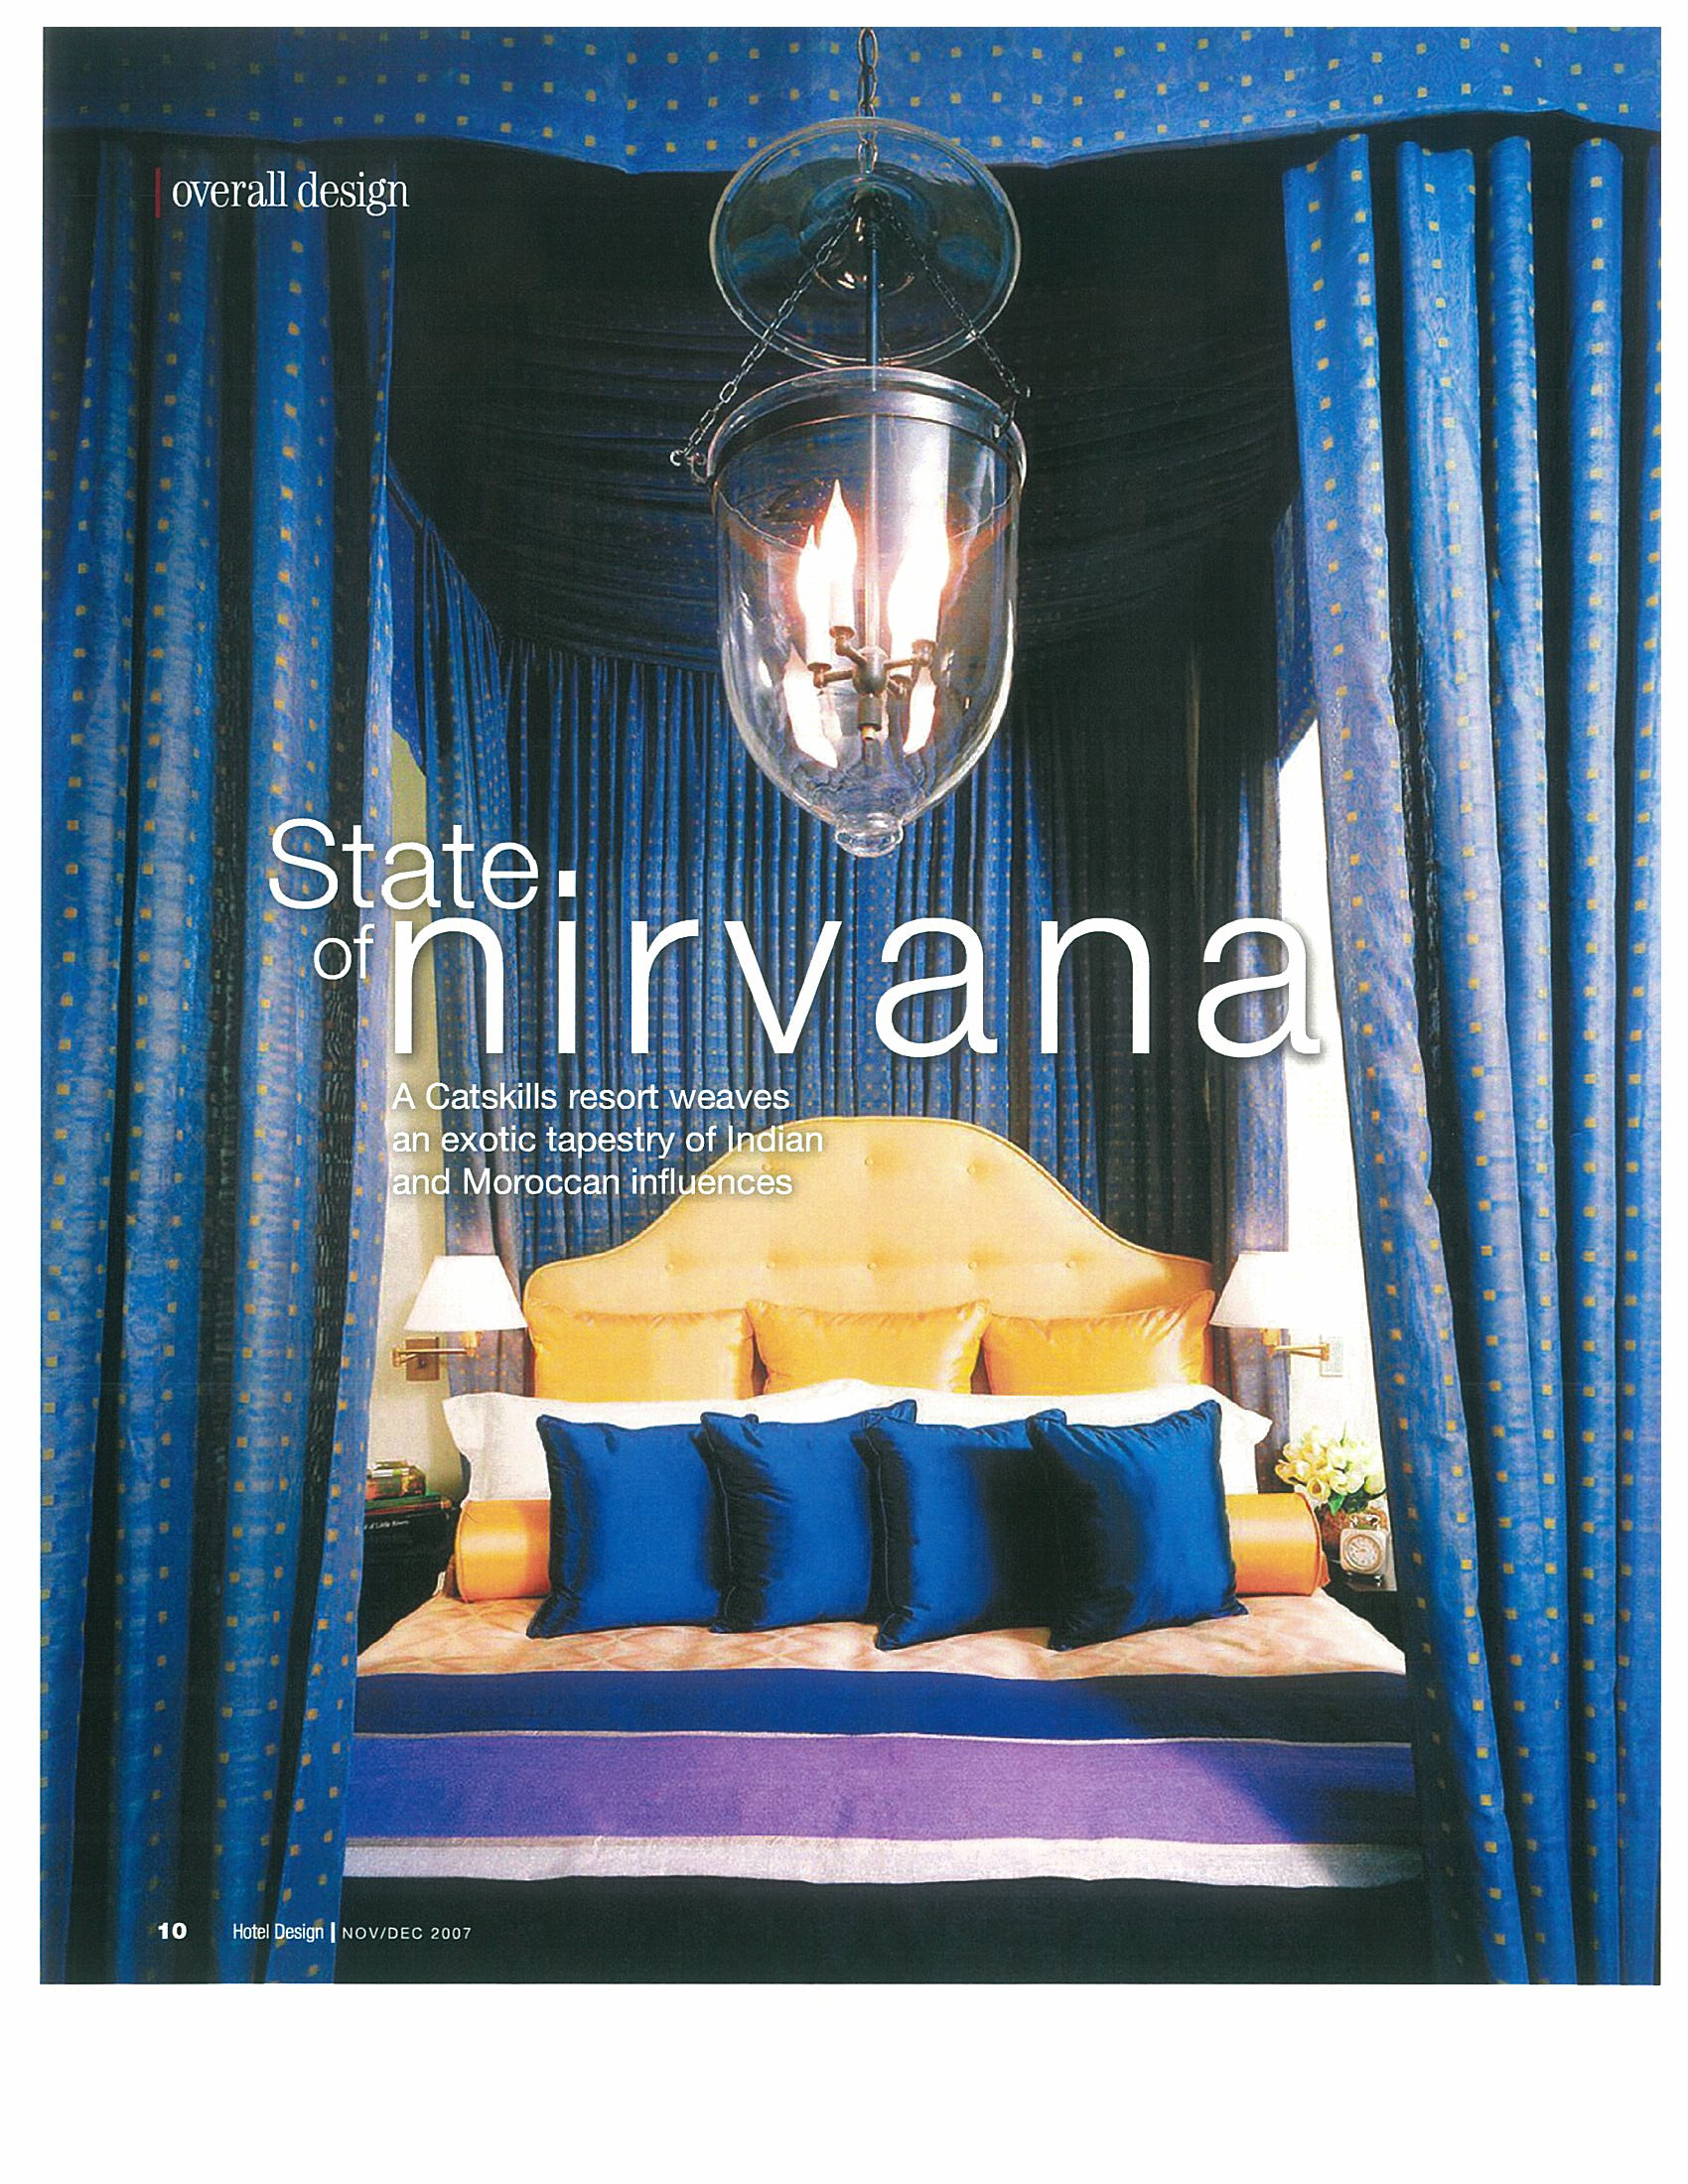 Emerson_Hotel_Design_Article_Page_2